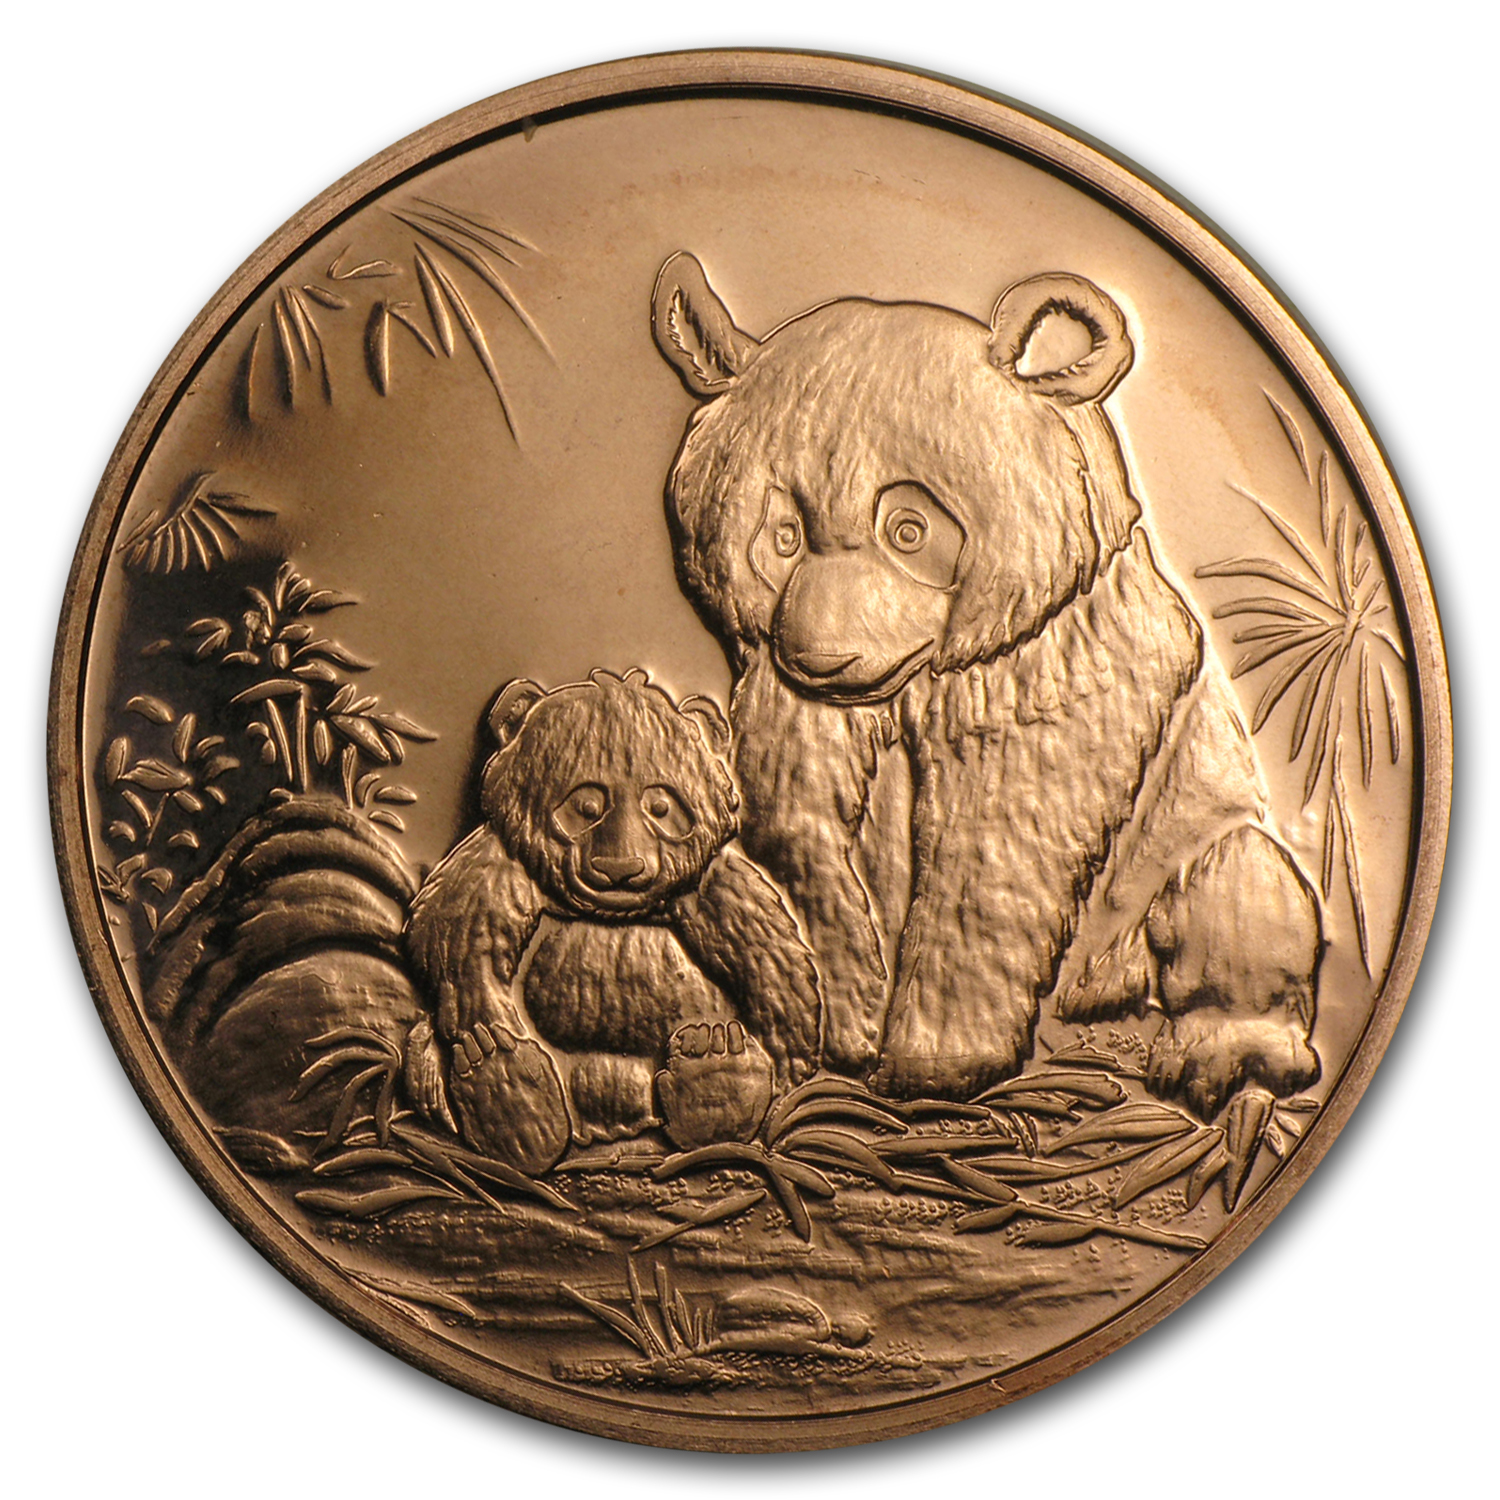 1 oz Copper Round - Panda